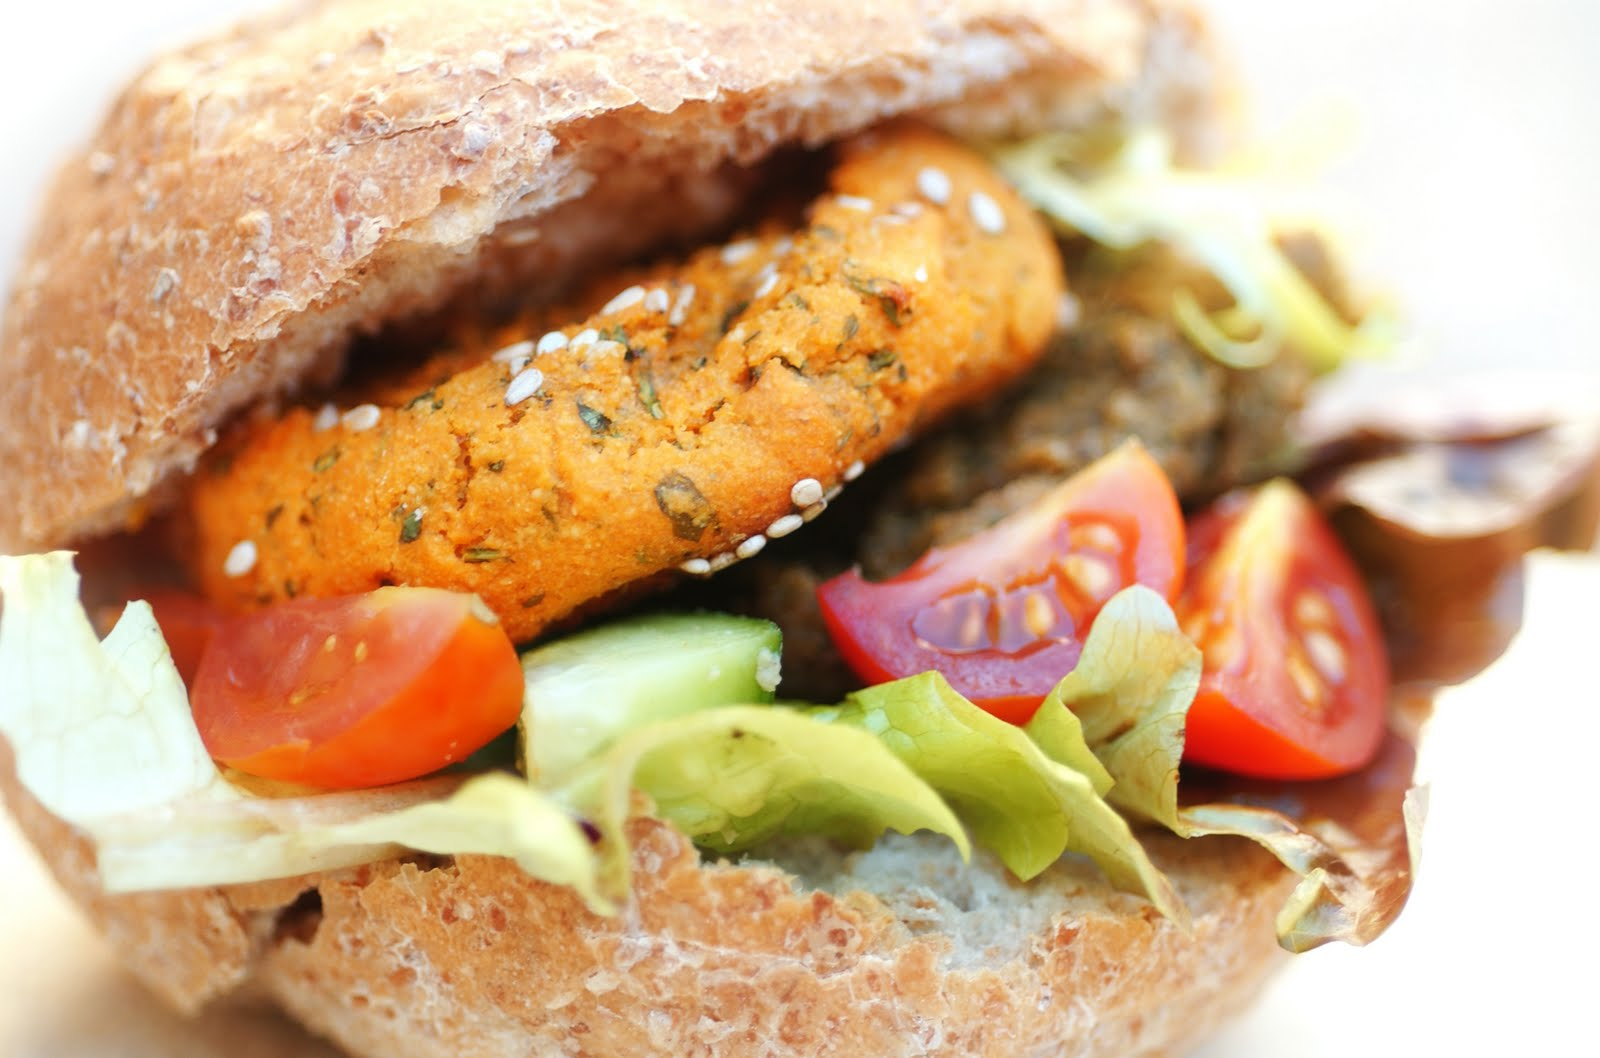 Anja's Food 4 Thought: Baked Veggie Burger Buffet - Sweet Potato, Black Beans and Chick Peas ...